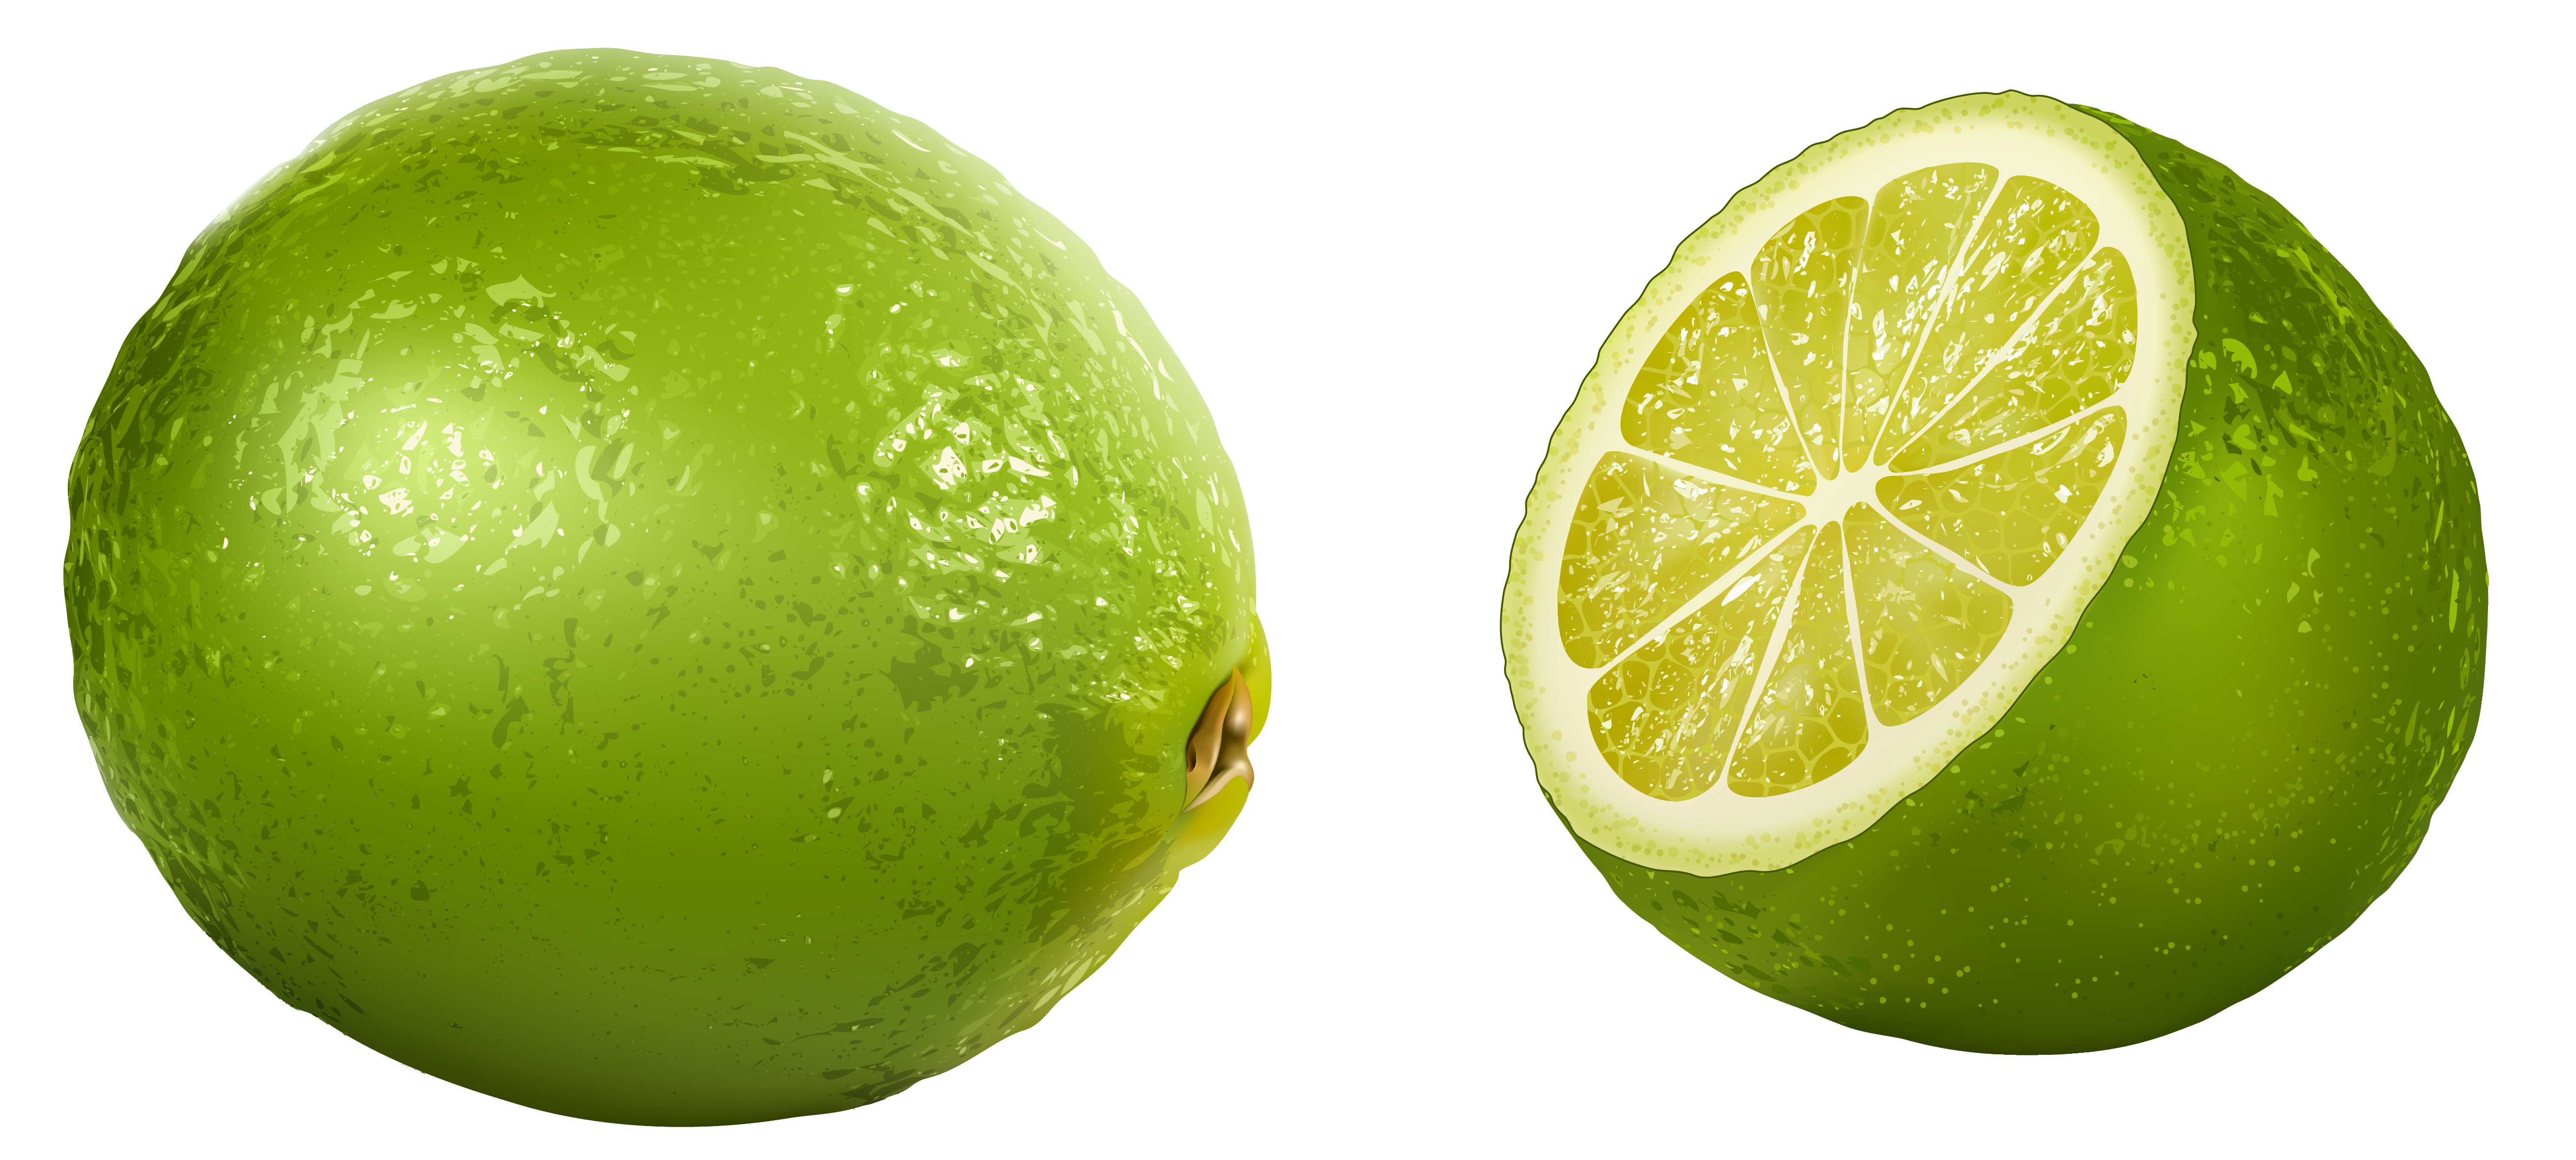 Fruits transparent lime. Clipart picture gallery yopriceville